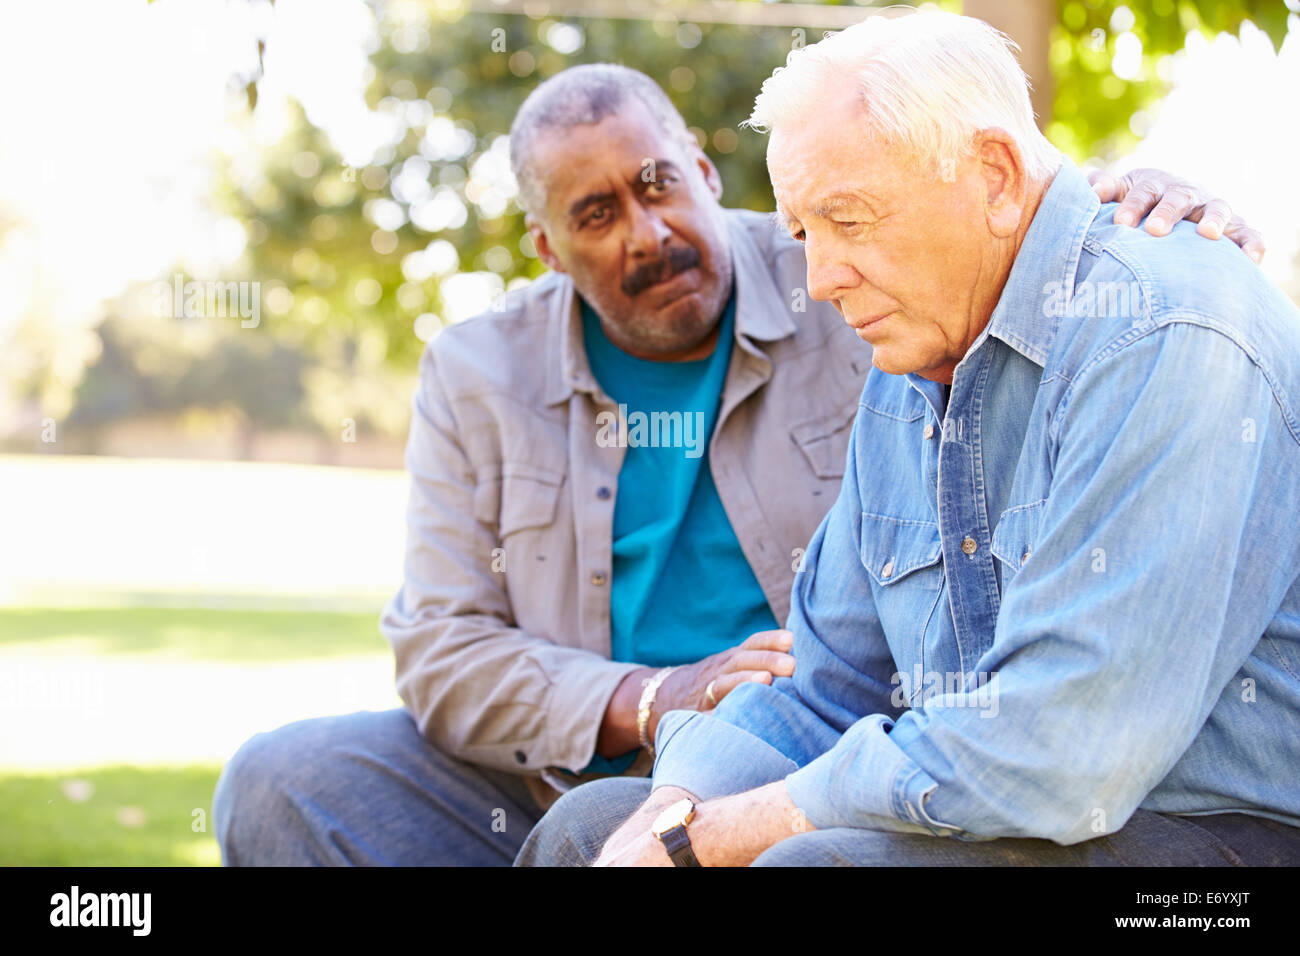 Man Comforting Unhappy Senior Friend Outdoors - Stock Image